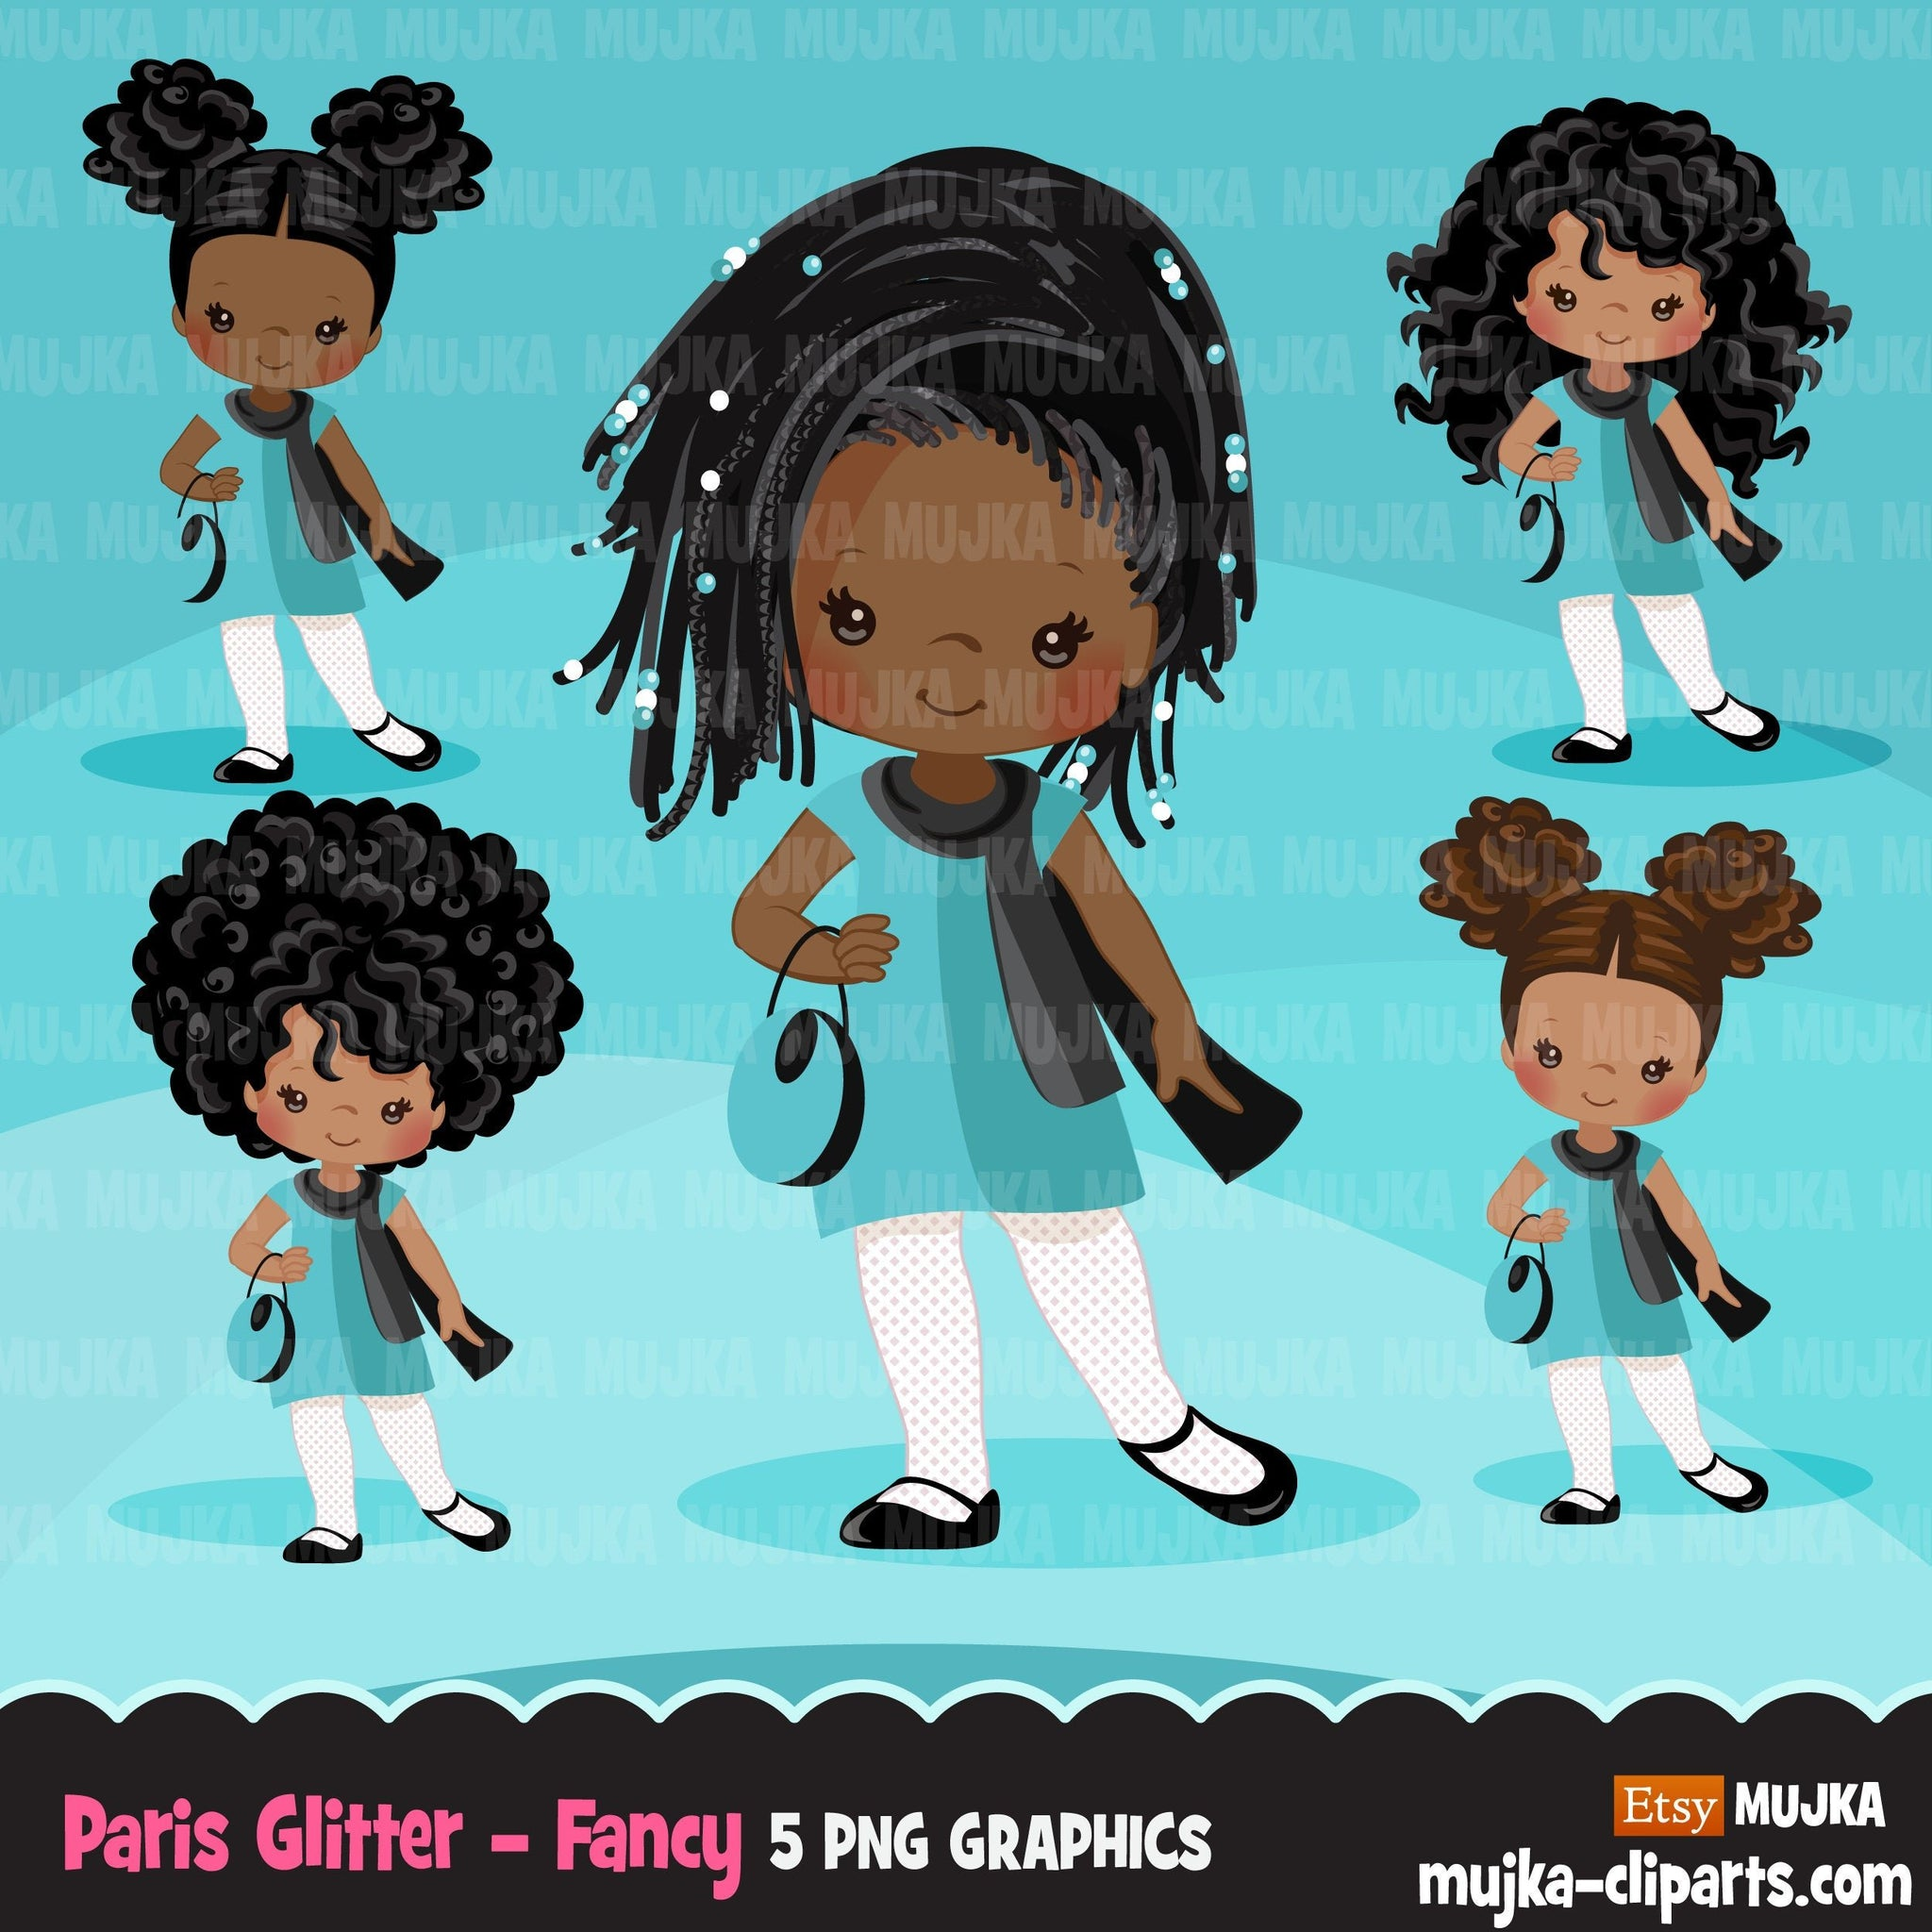 Paris clipart, Glitter teal Paris Black Girls, fashion, french shopping, tea party, baby shower, birthday graphics